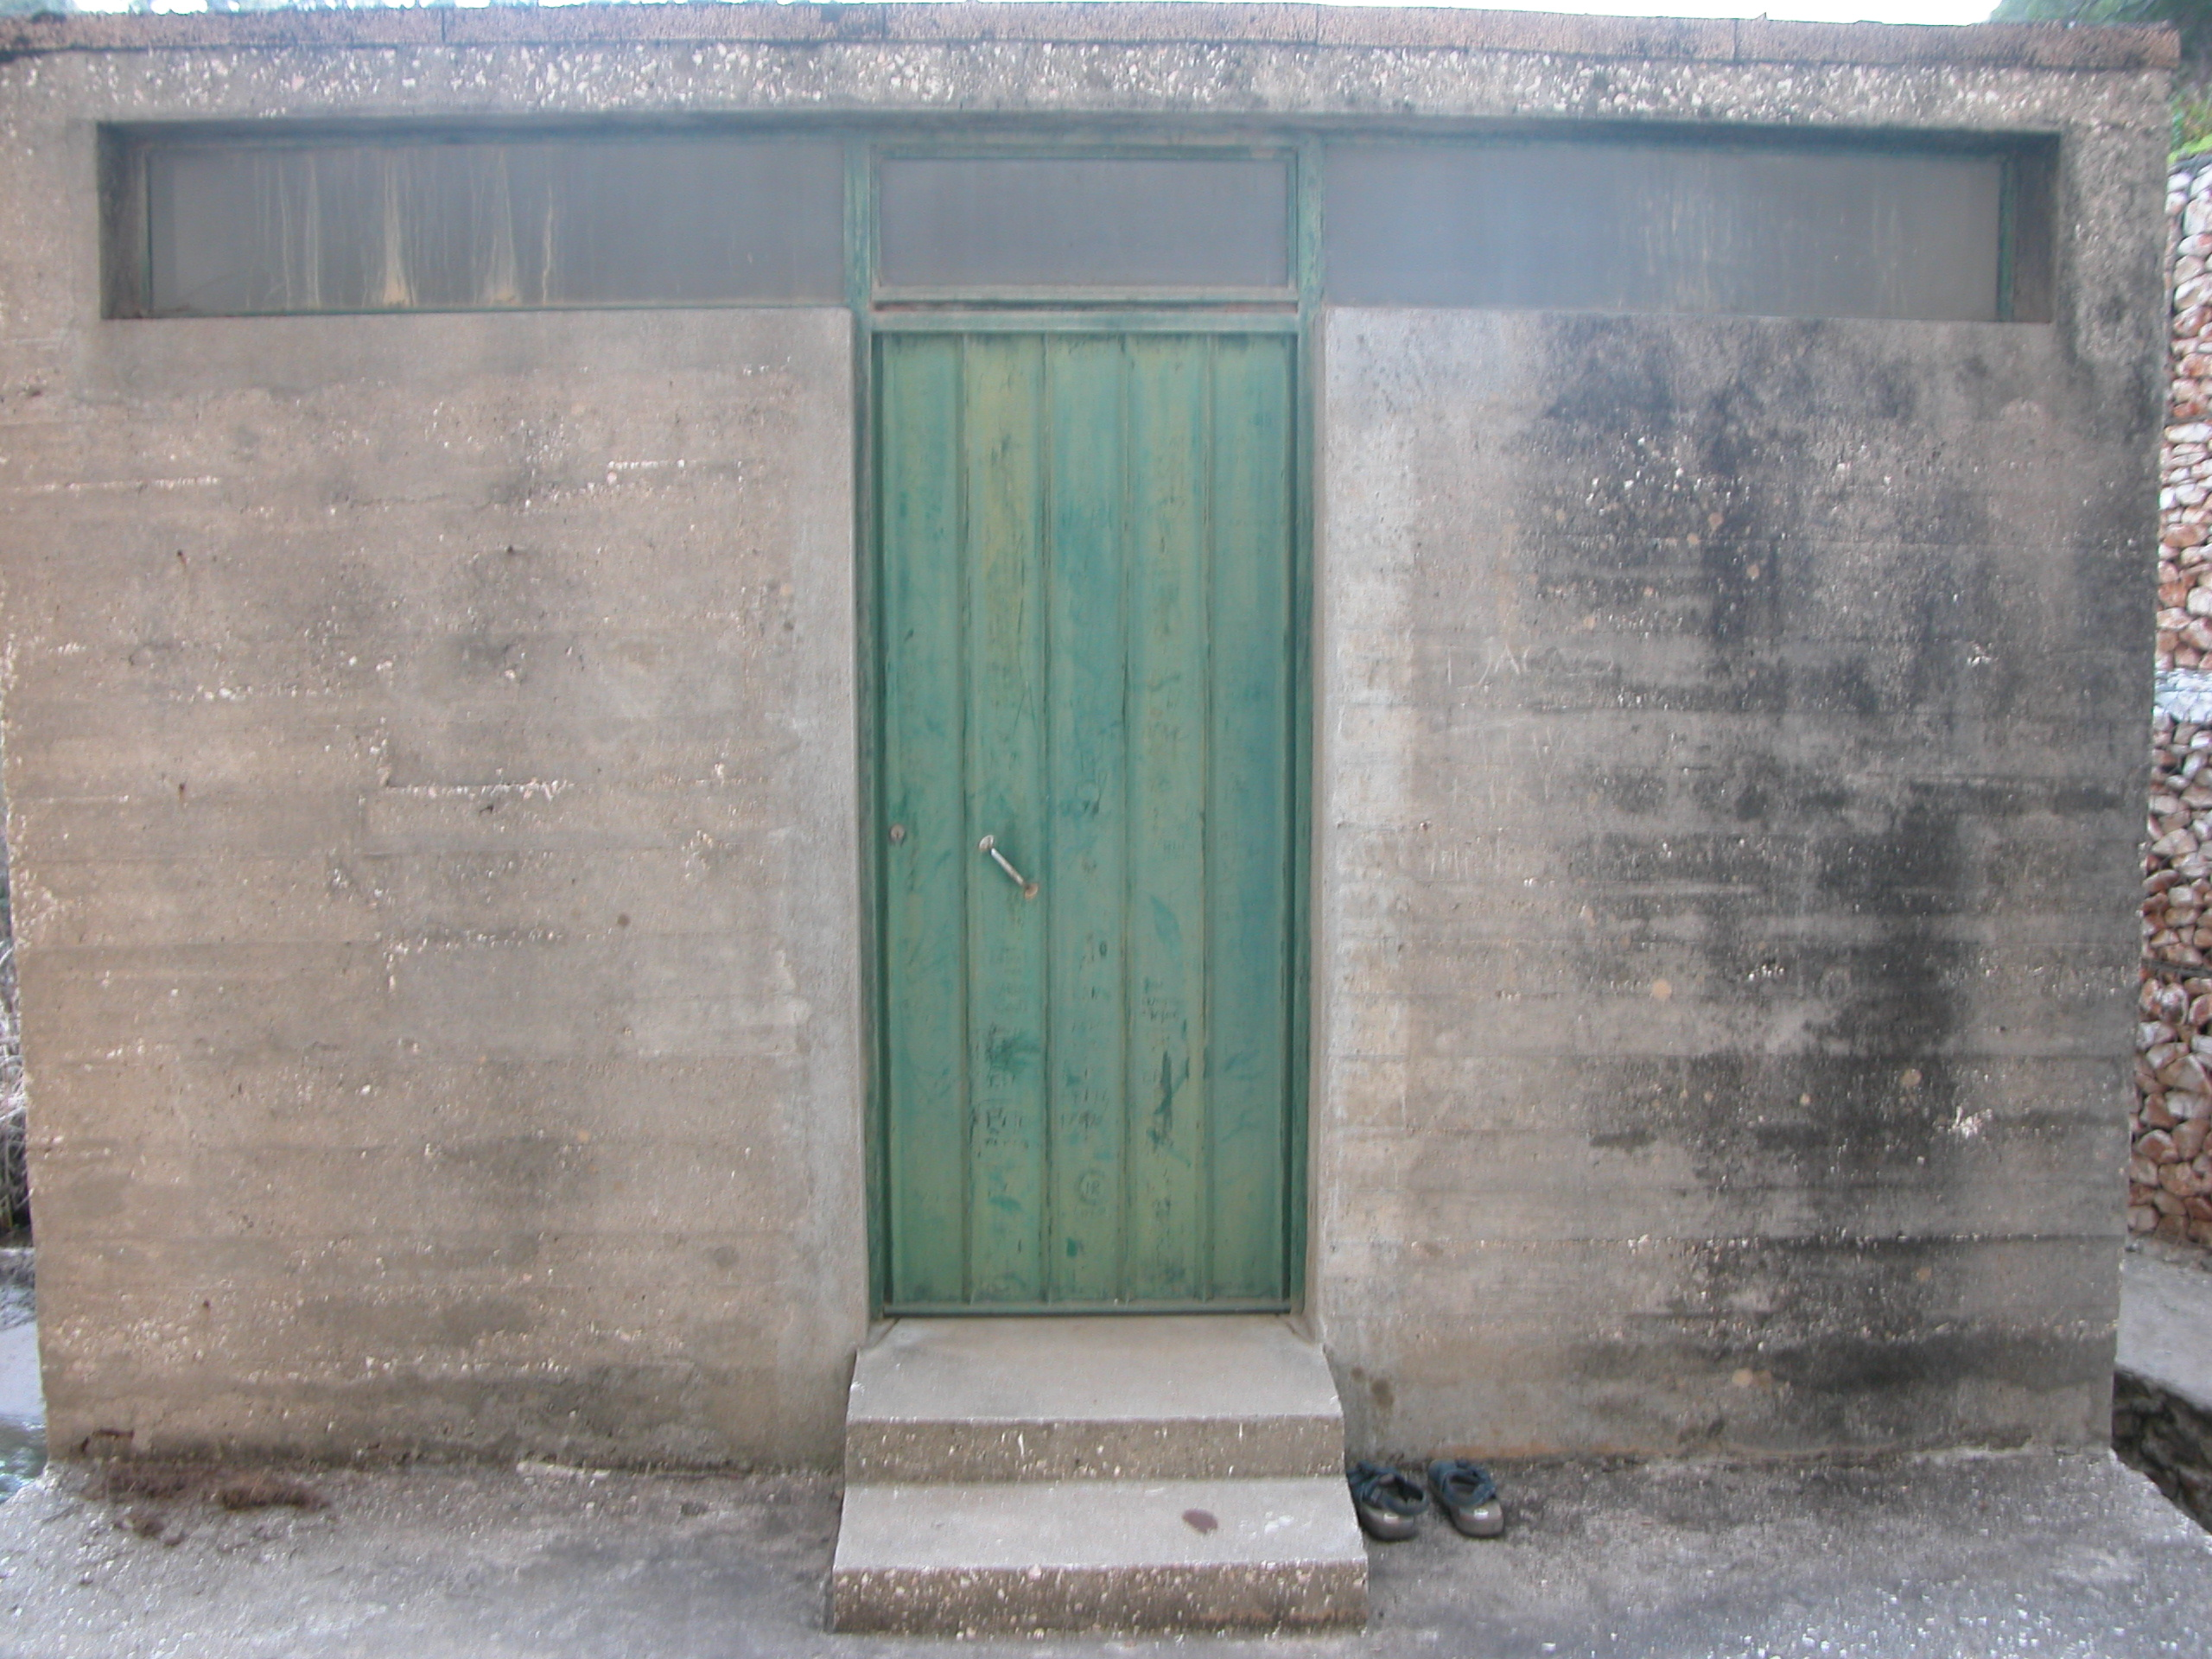 wall hard cement stone door green wooden steps shed bunker